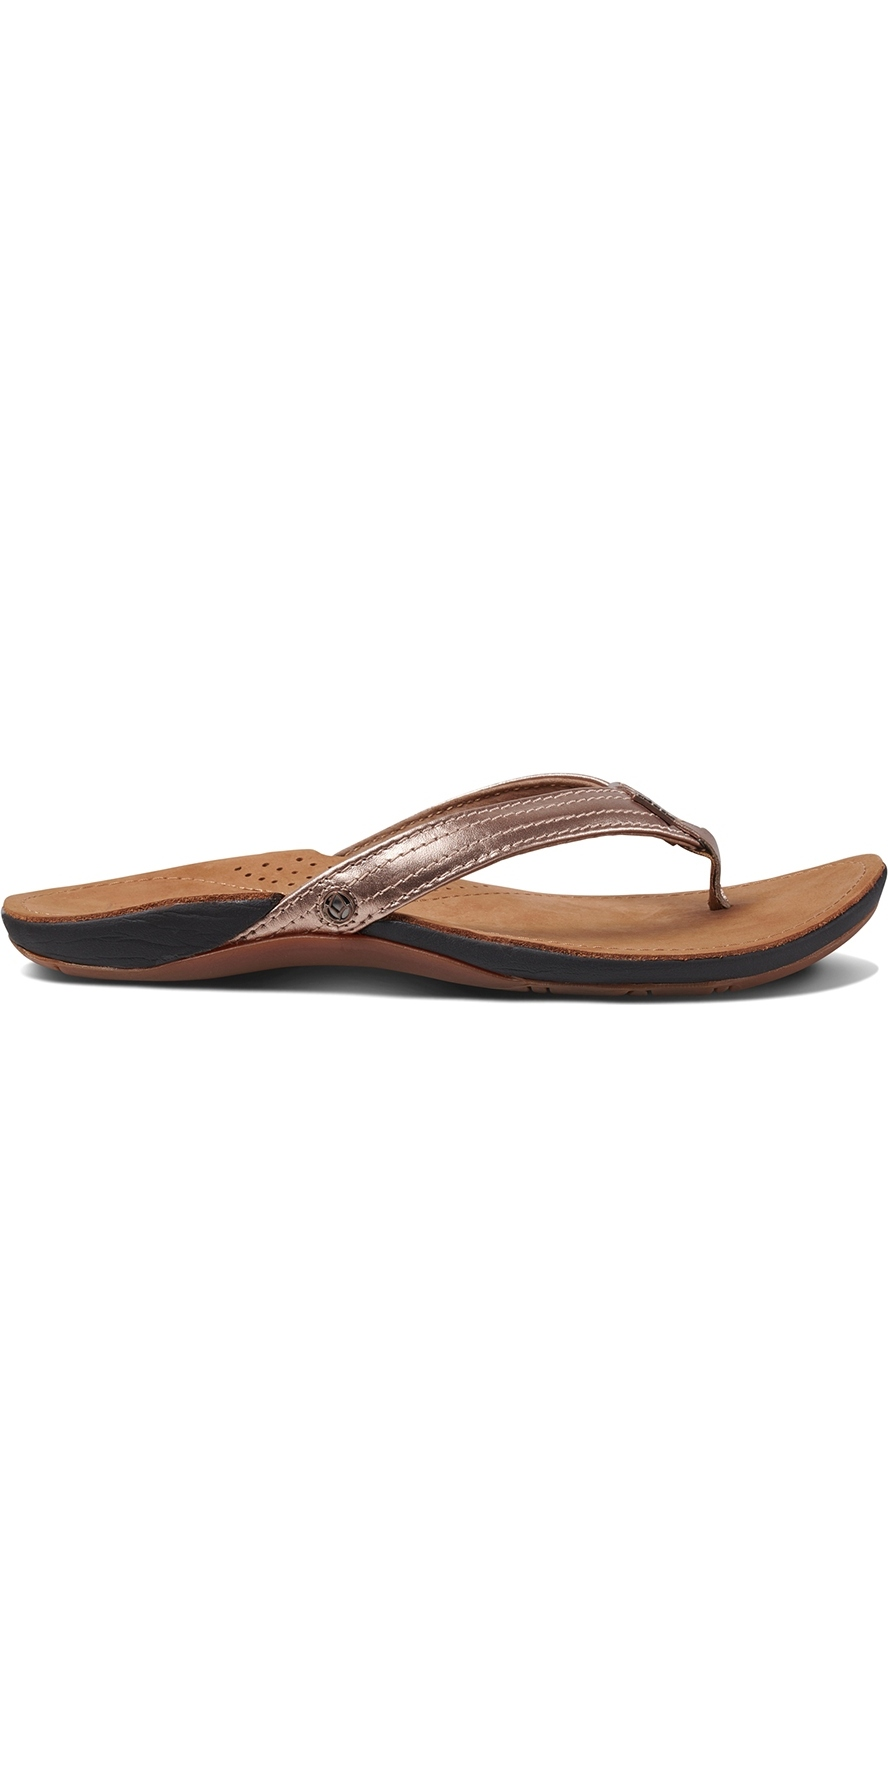 e54fd8f8b680 Reef Womens Miss J-Bay Flip Flops Rose Gold RF001241